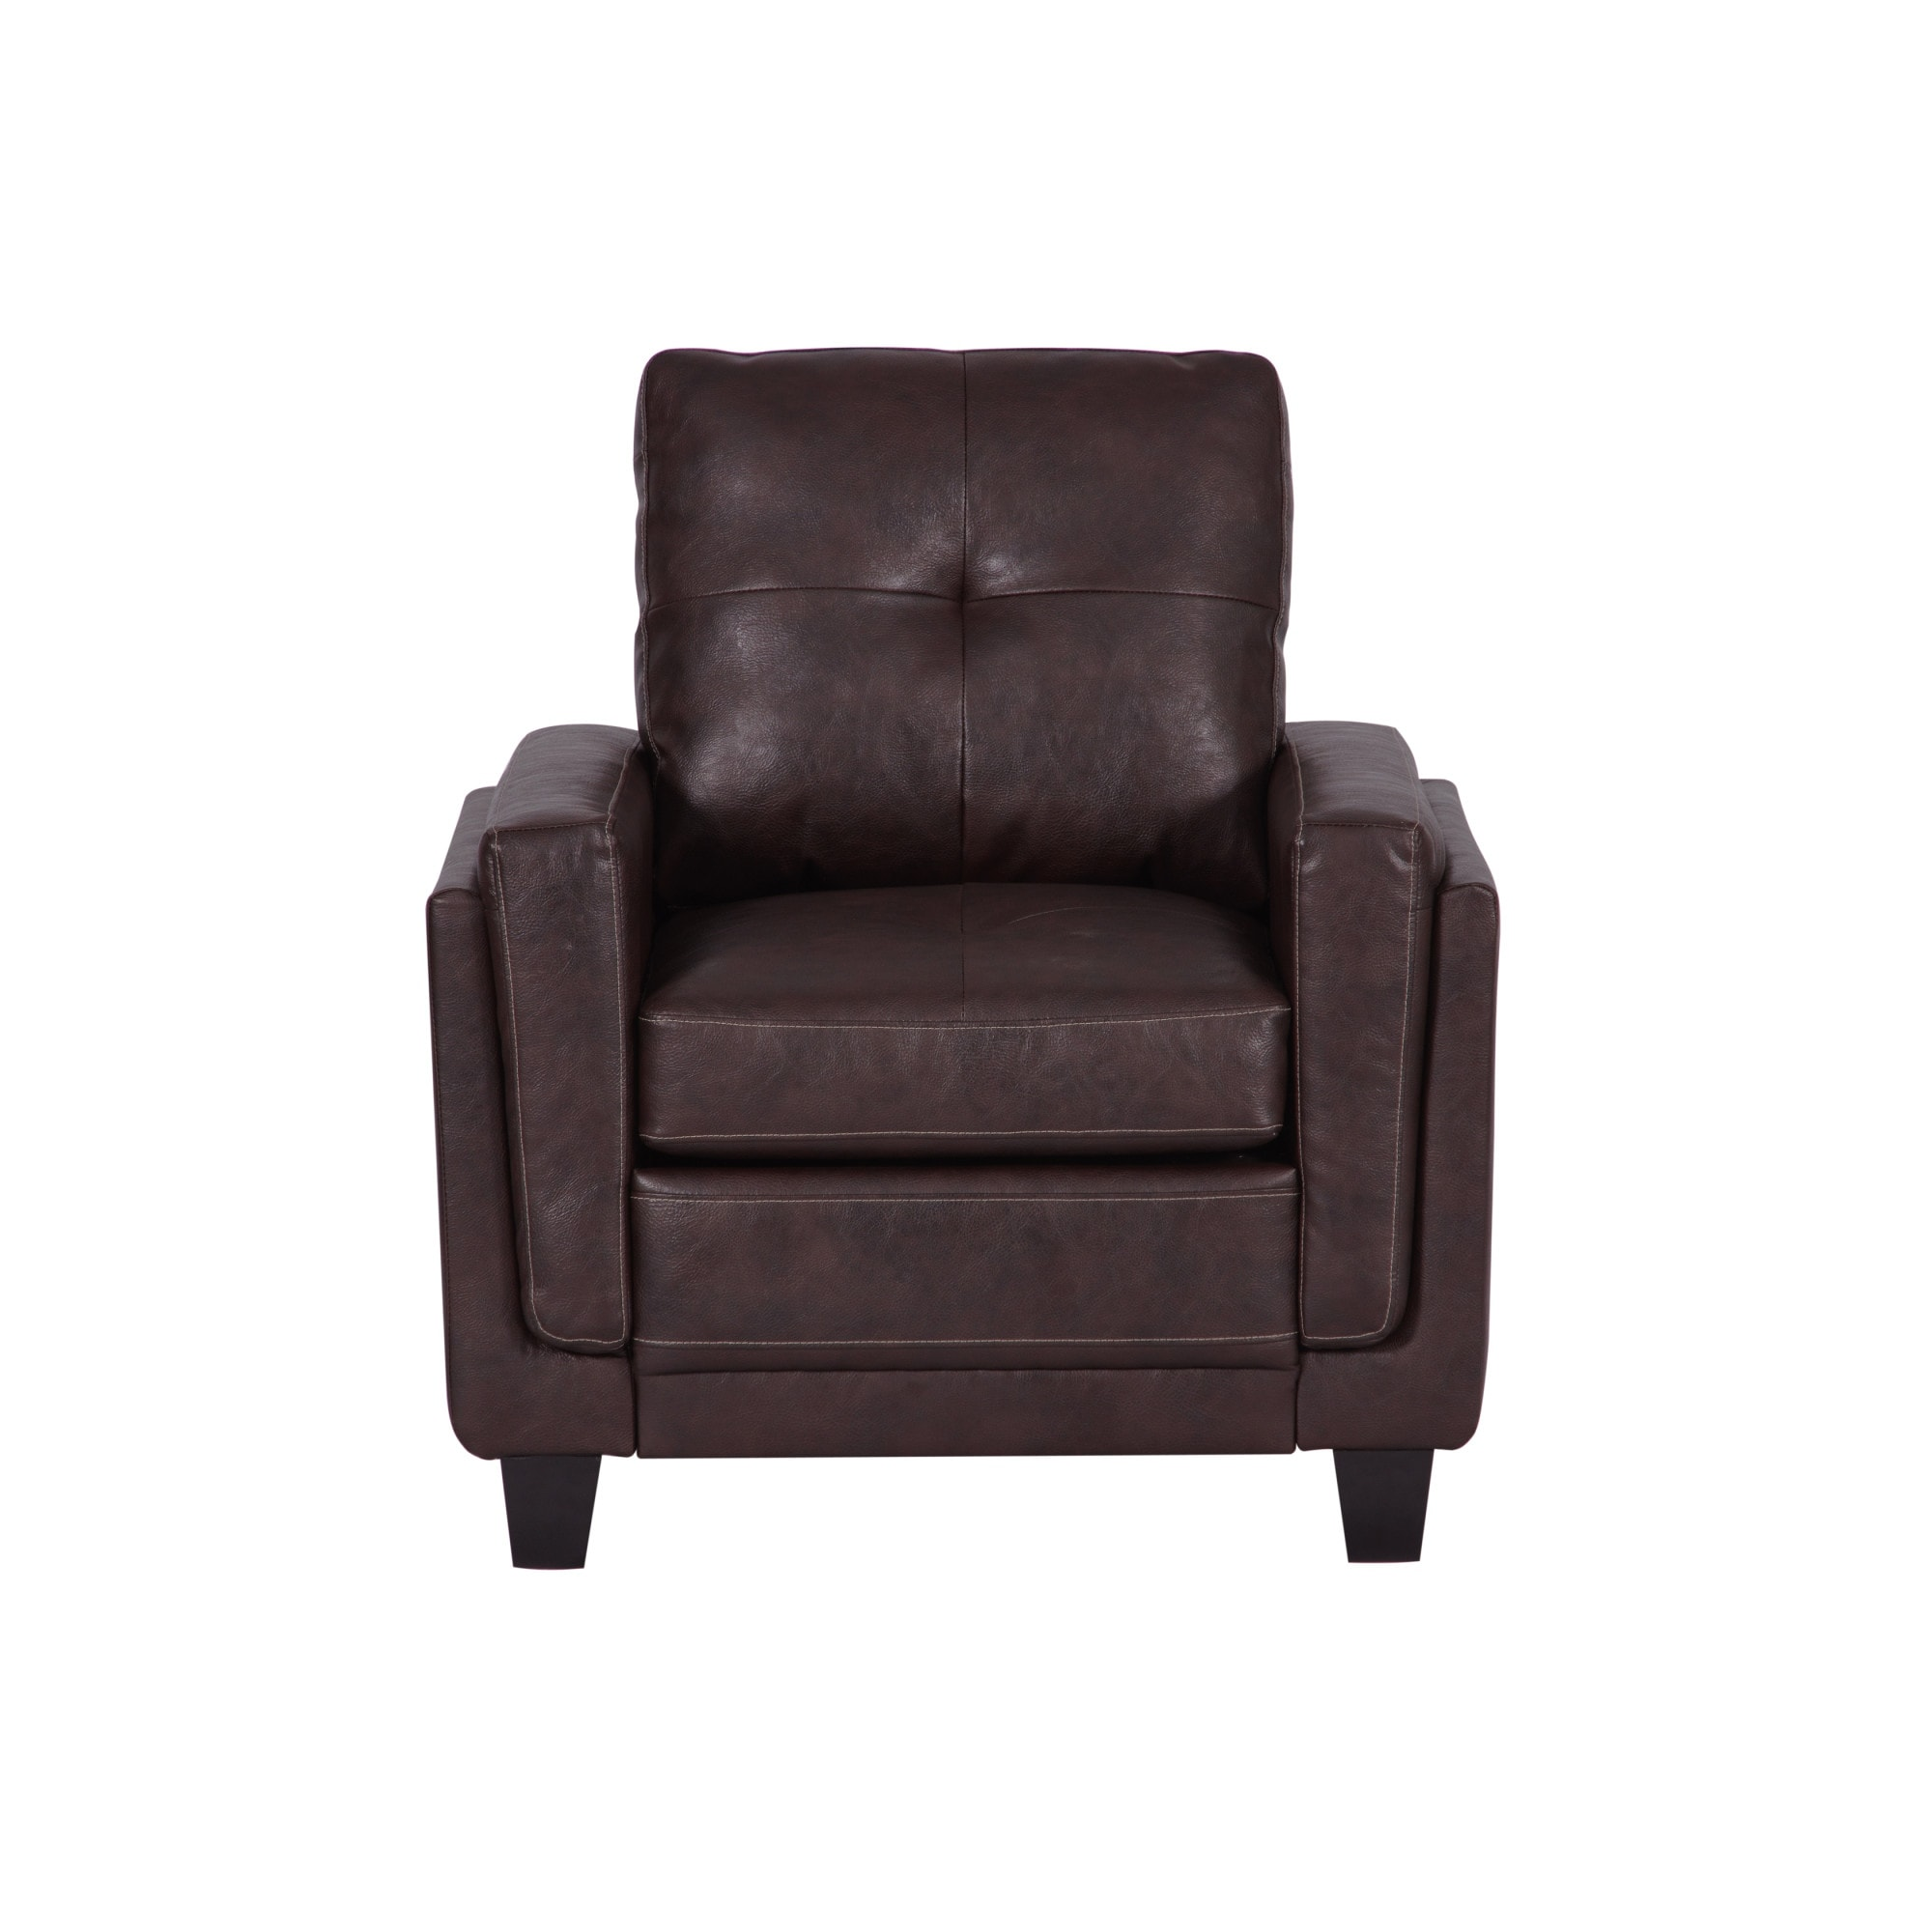 Chocolate Brown Accent Chairs.Delacora Hm Ds A192 681 33 1 2 Wide Hardwood Framed Bonded Leather Accent Chair Rich Chocolate Brown N A